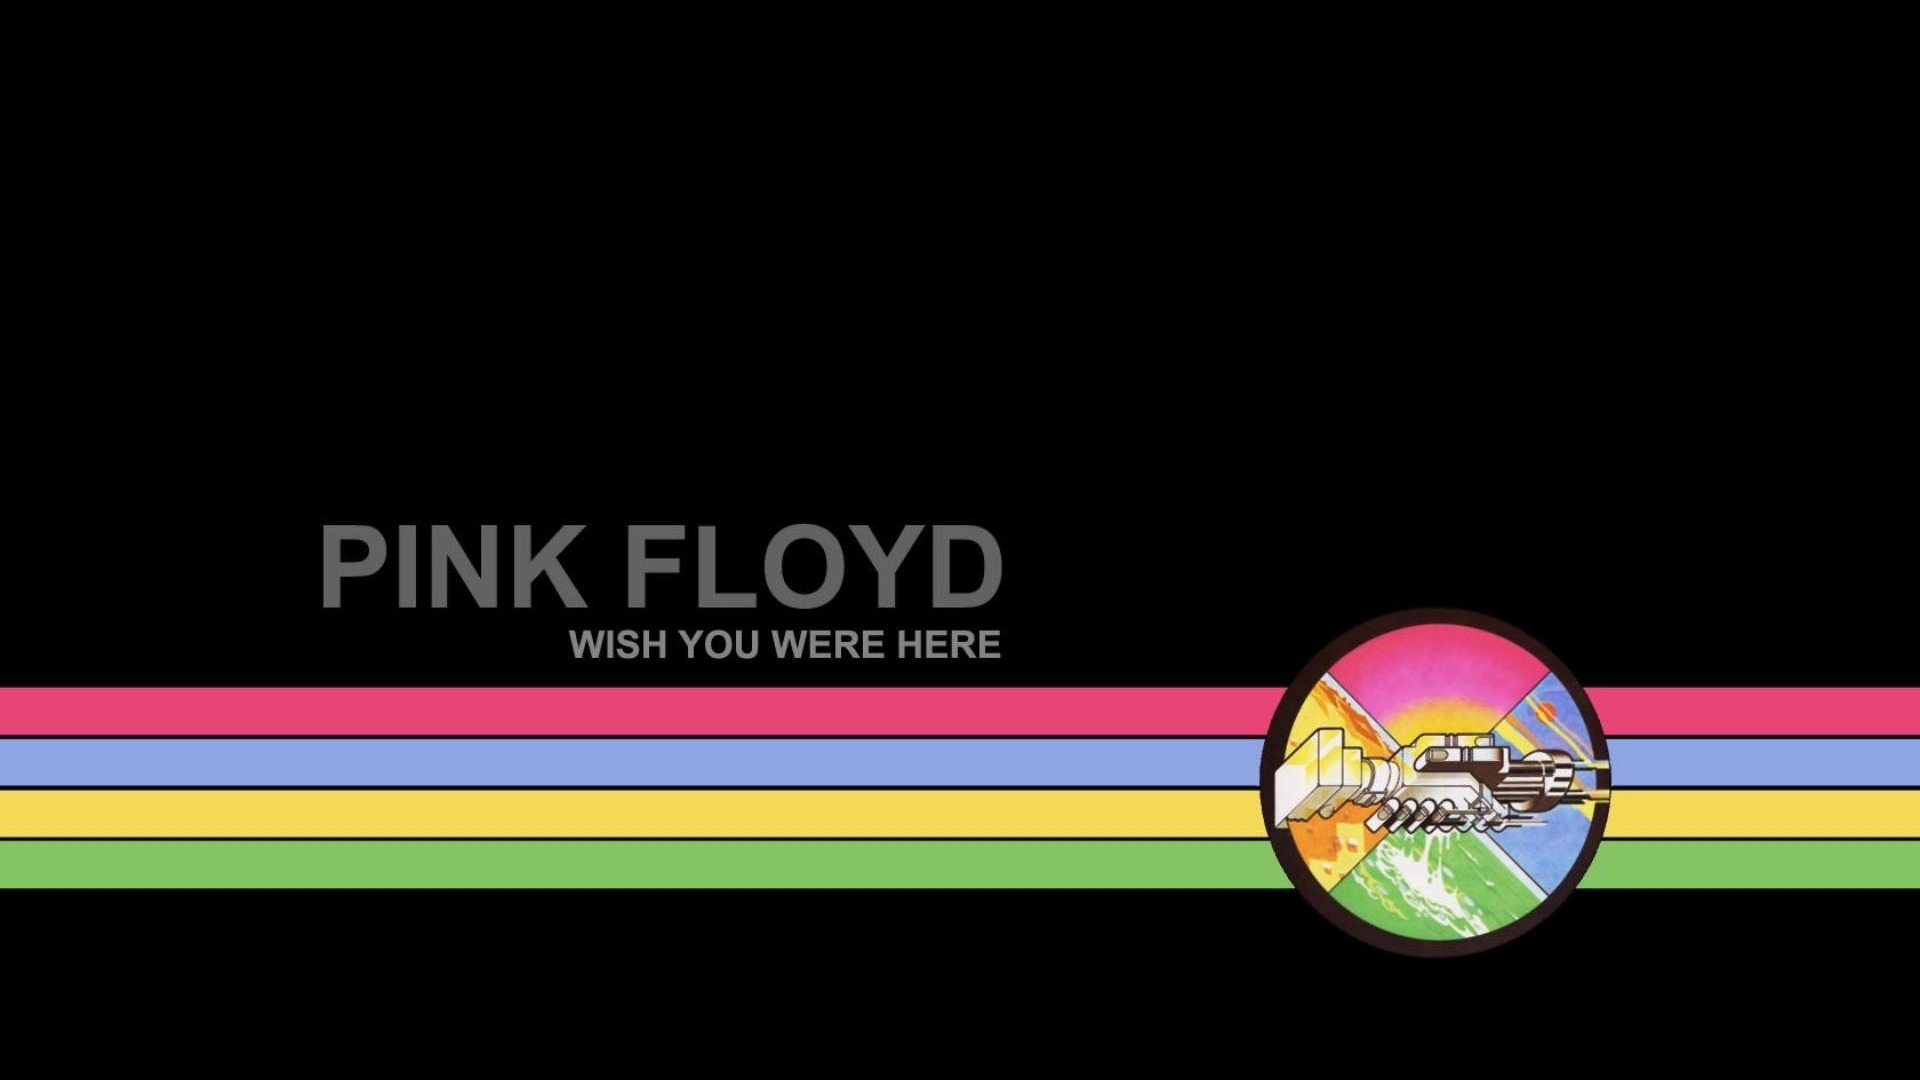 Pink Floyd Wallpaper Wish You Were Here